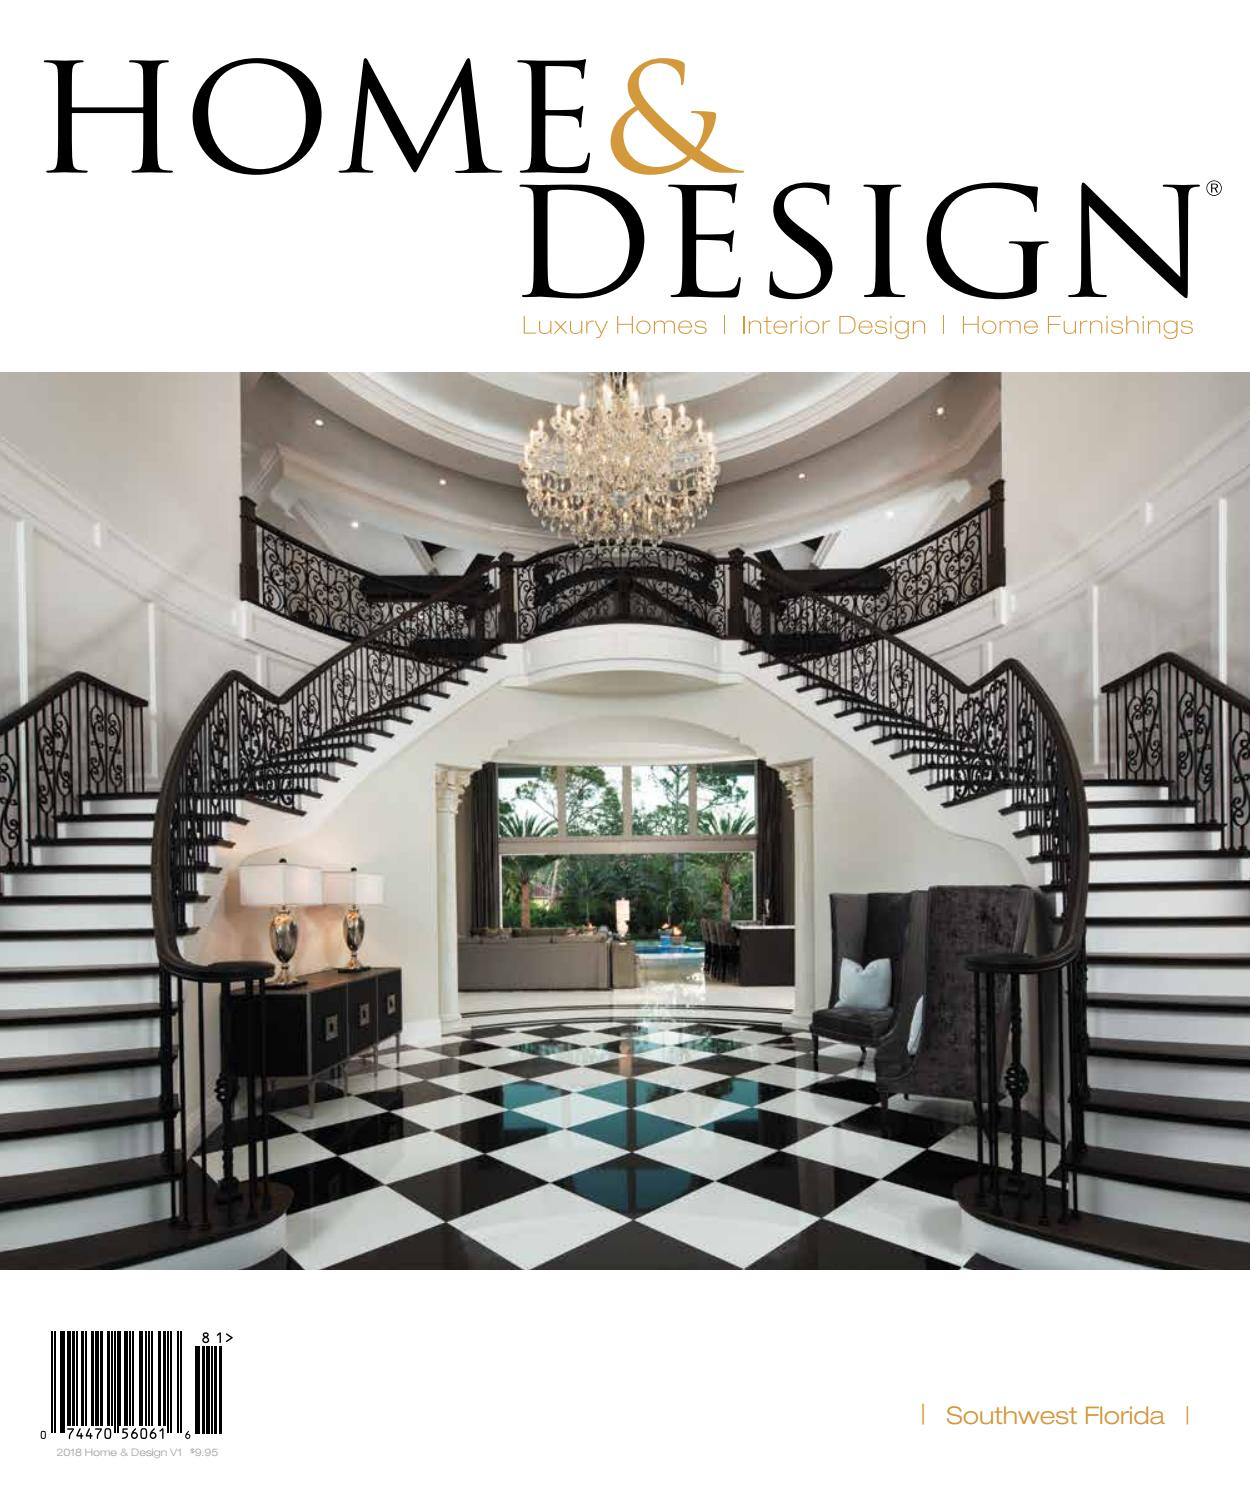 Home Design Magazine Southwest Florida Edition 2018 By Jennifer Evans Issuu